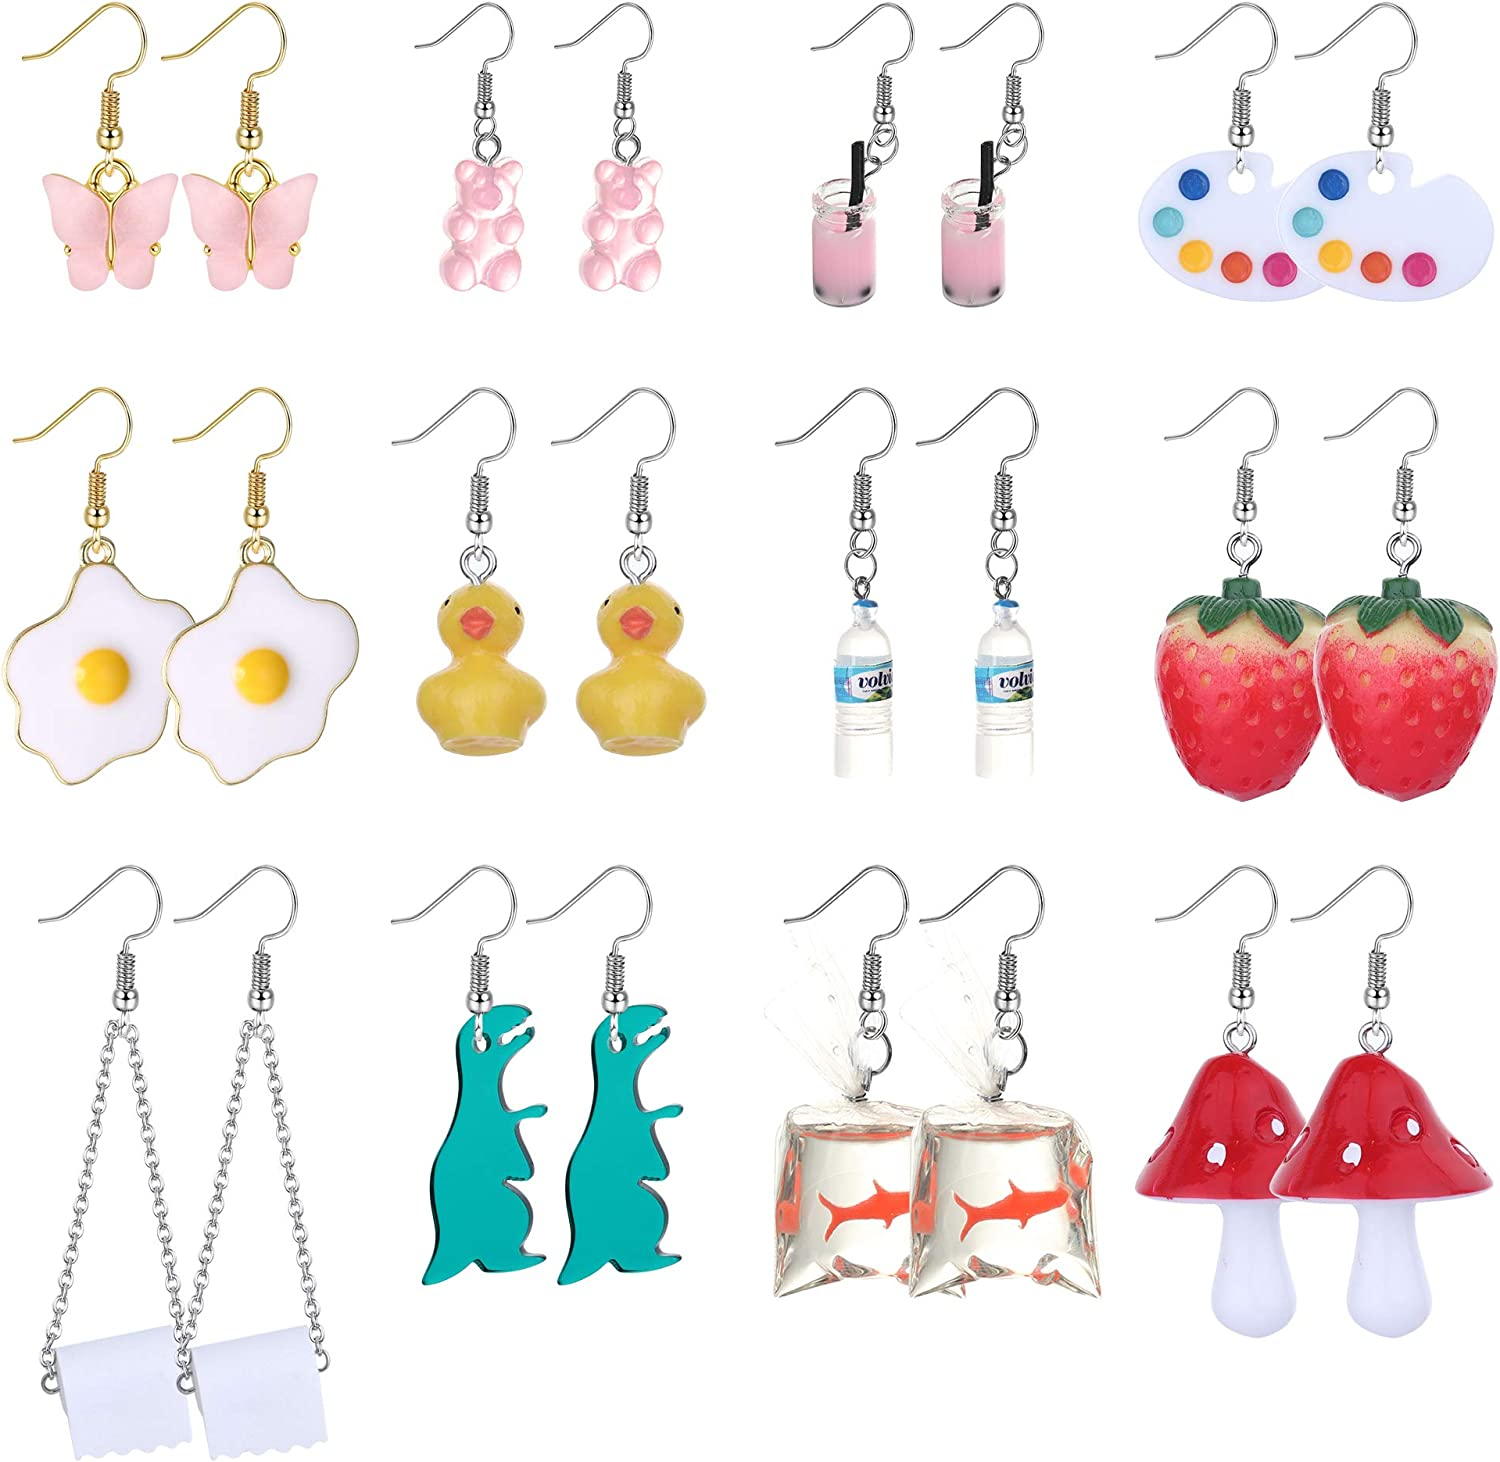 Jstyle 12Pairs Cute Regular discount Funny Cool Earrings Wate Paper Toilet Weird Factory outlet